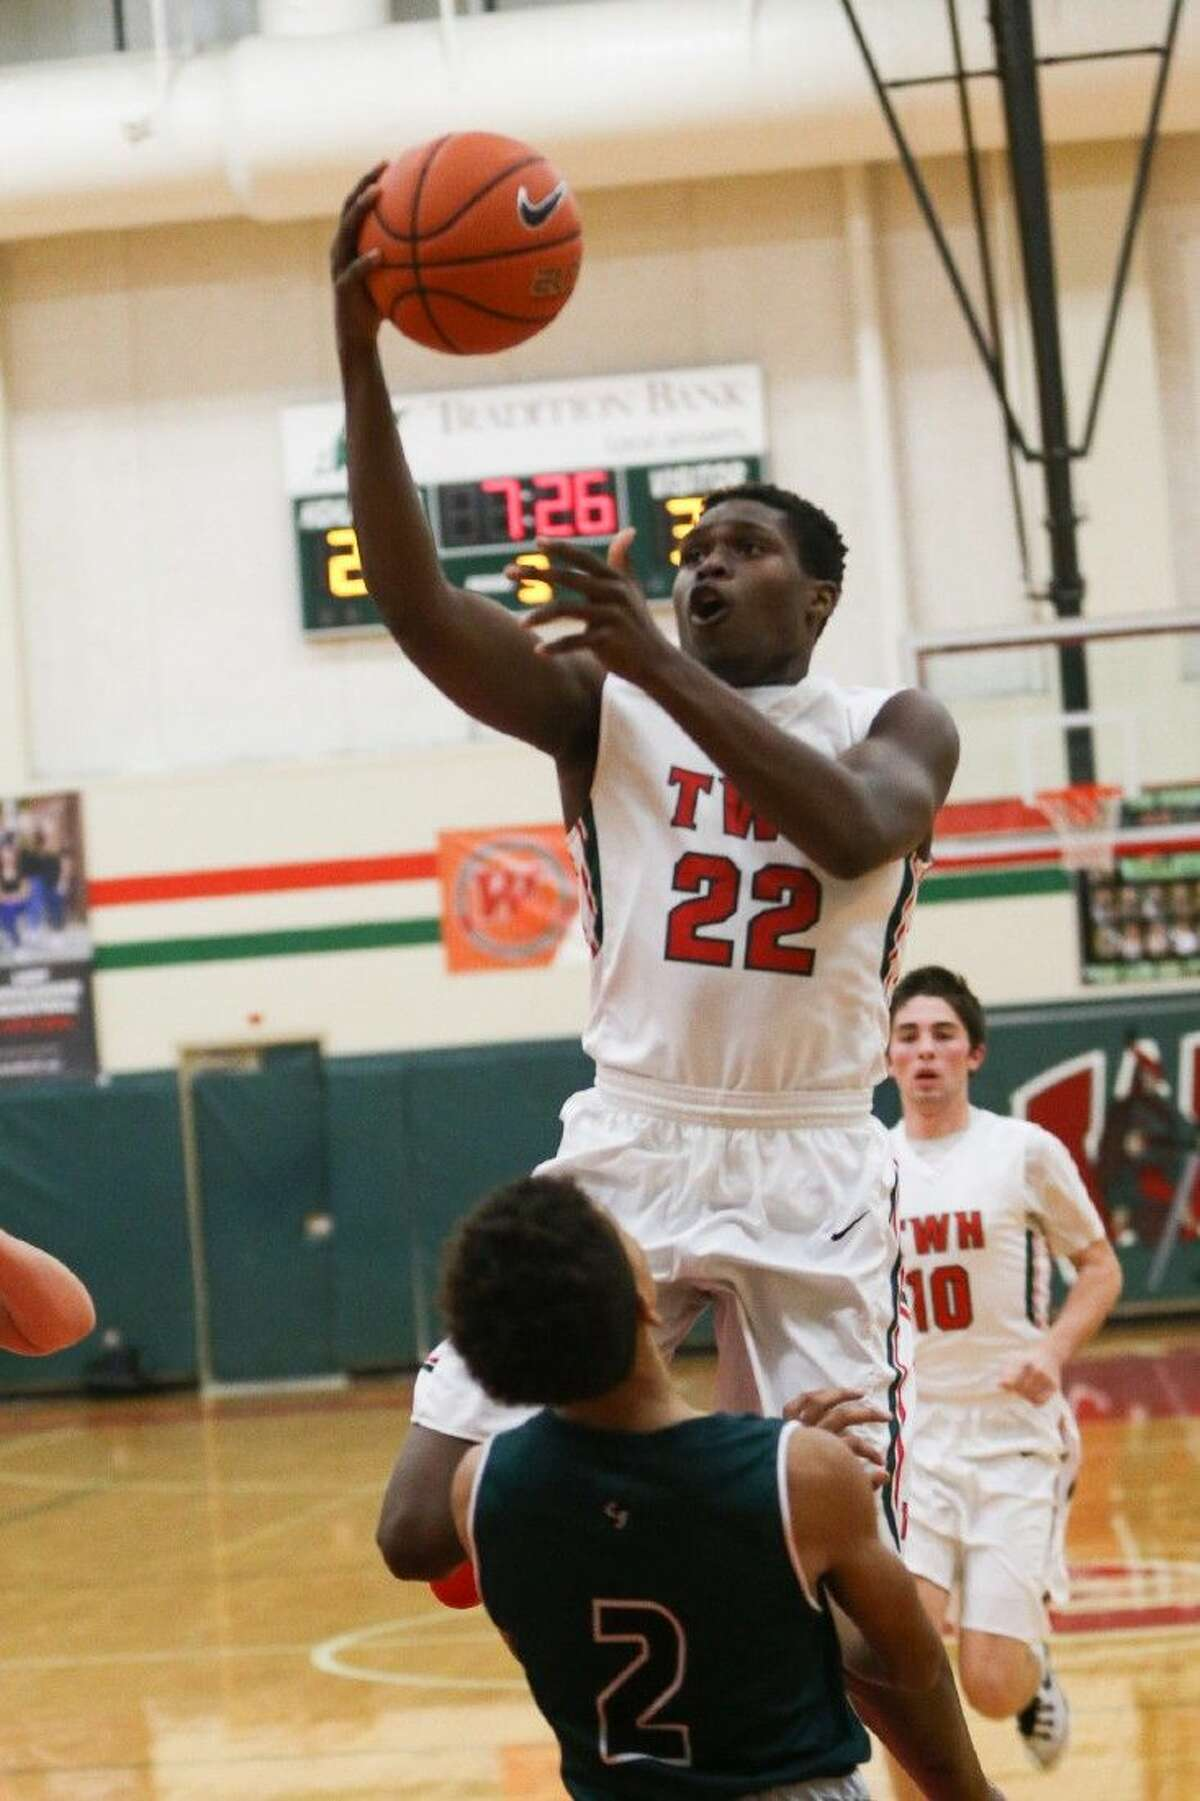 The Woodlands' Romello Wilbert averaged 13 points per game for the Highlanders this season.